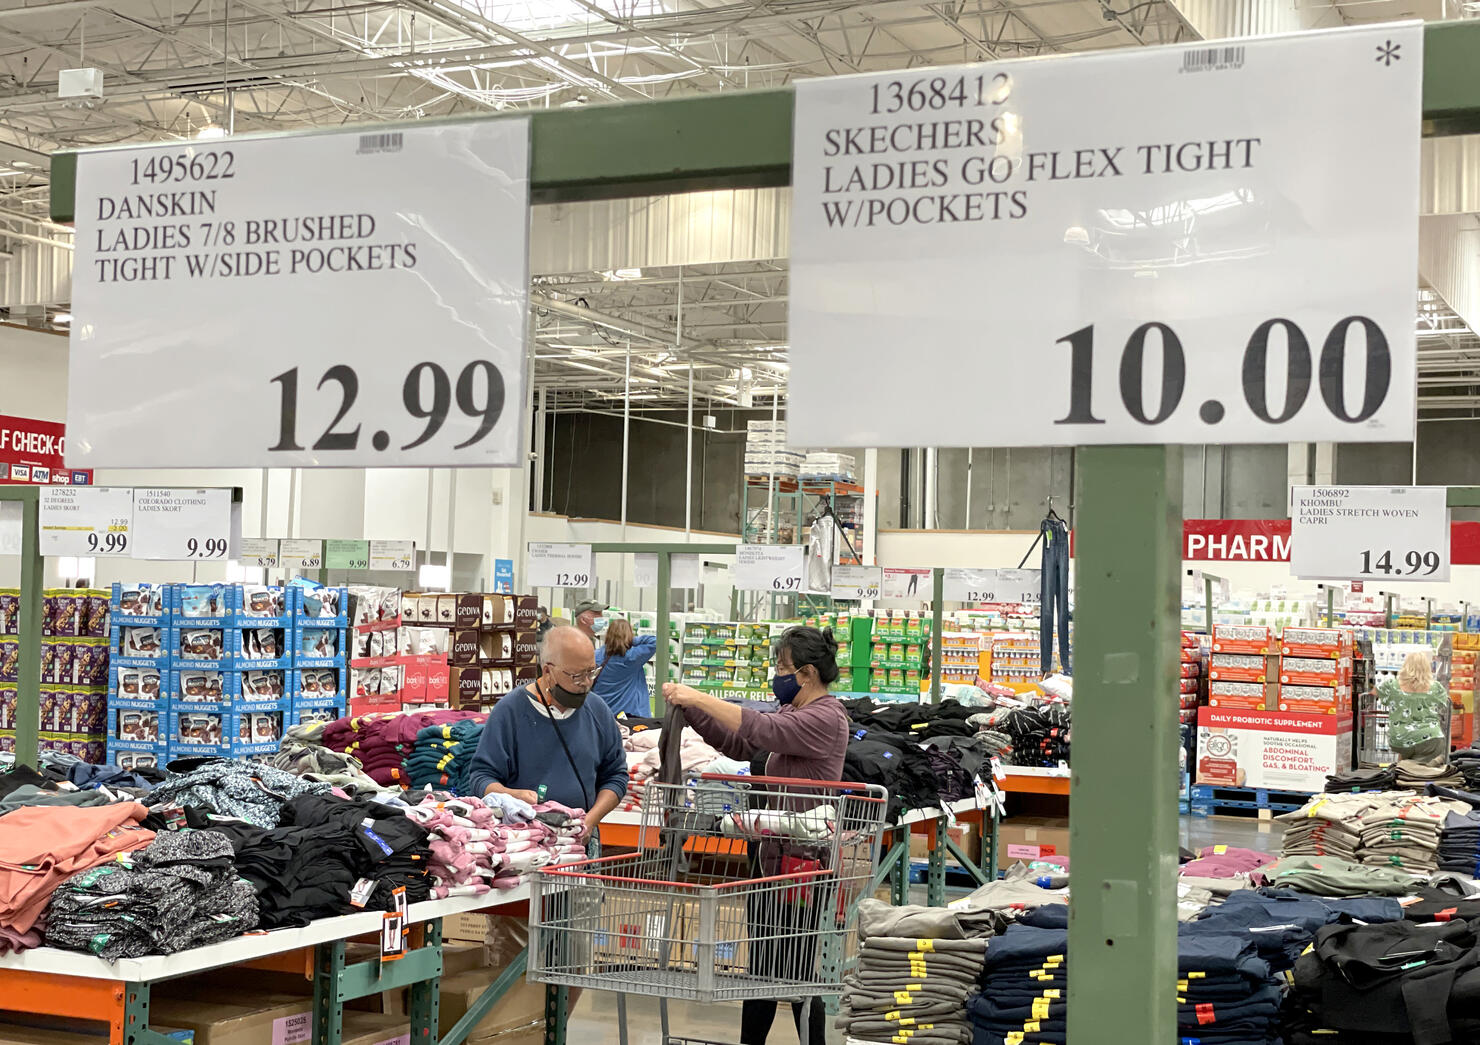 U.S. Consumer Prices Rise To Highest 12-Month Rate Since 2008